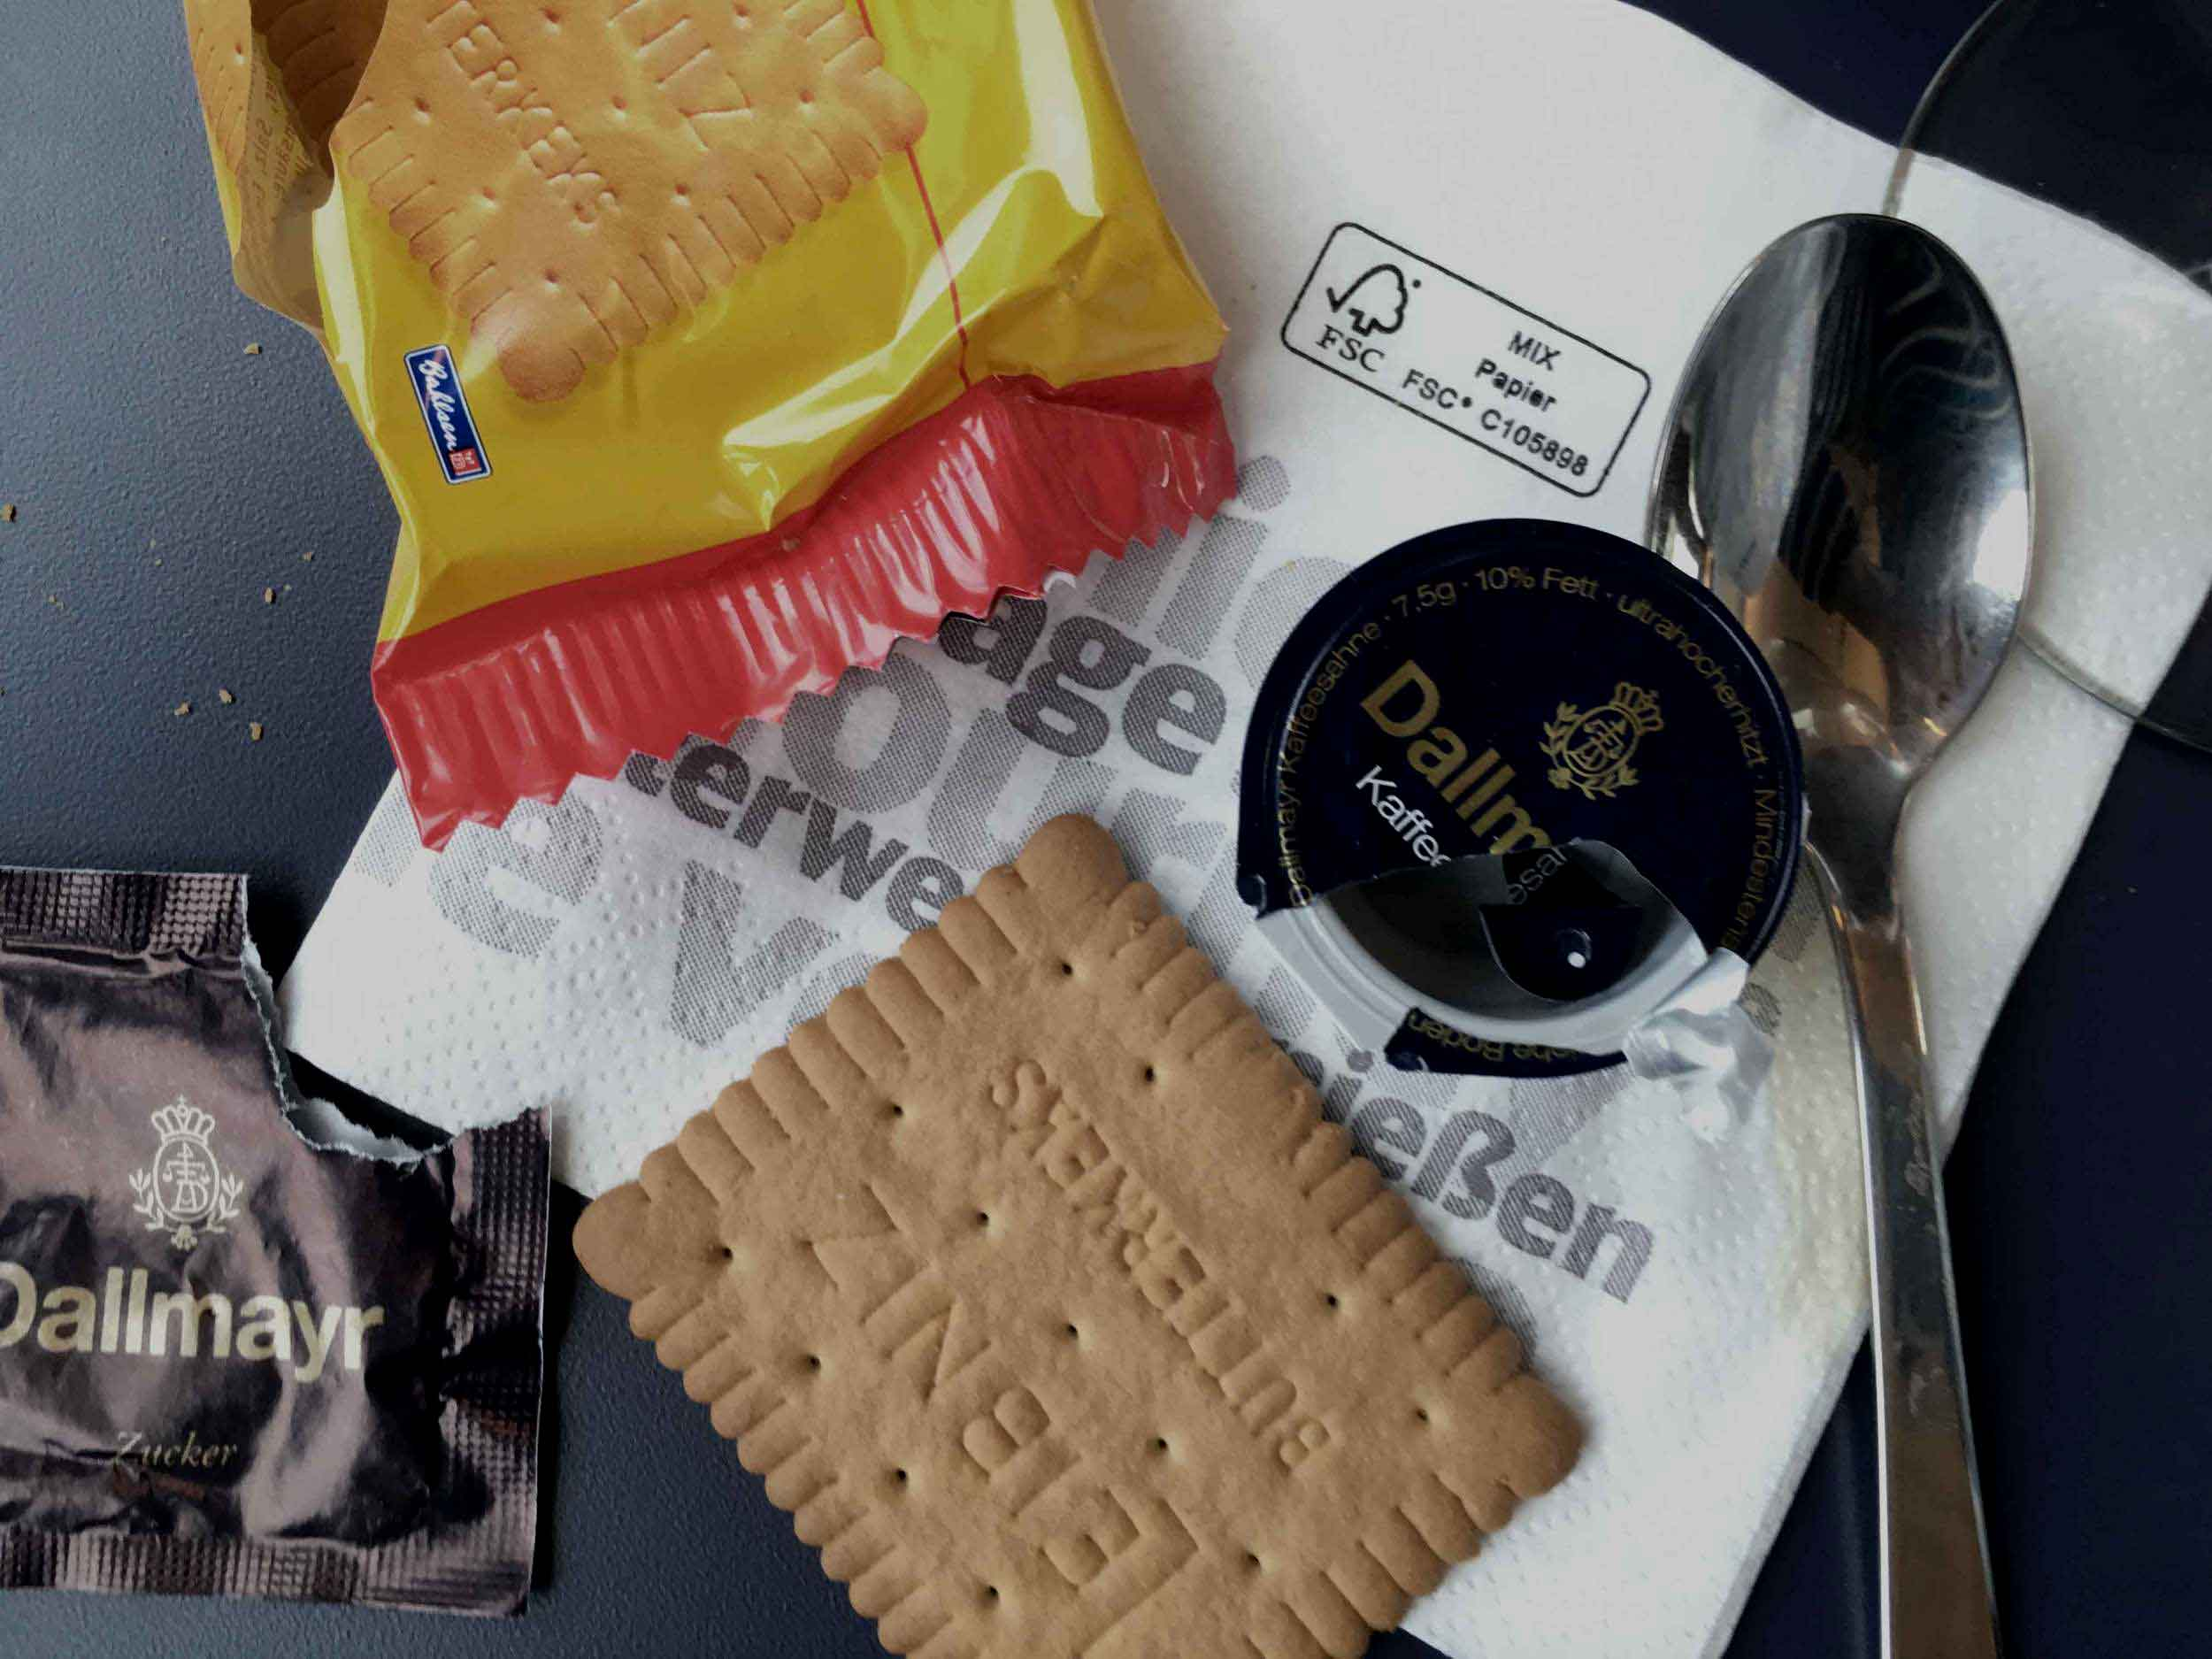 Cookies inside train, ICE, Inter City Express, First Class, German Rail. Image©thingstodot.com